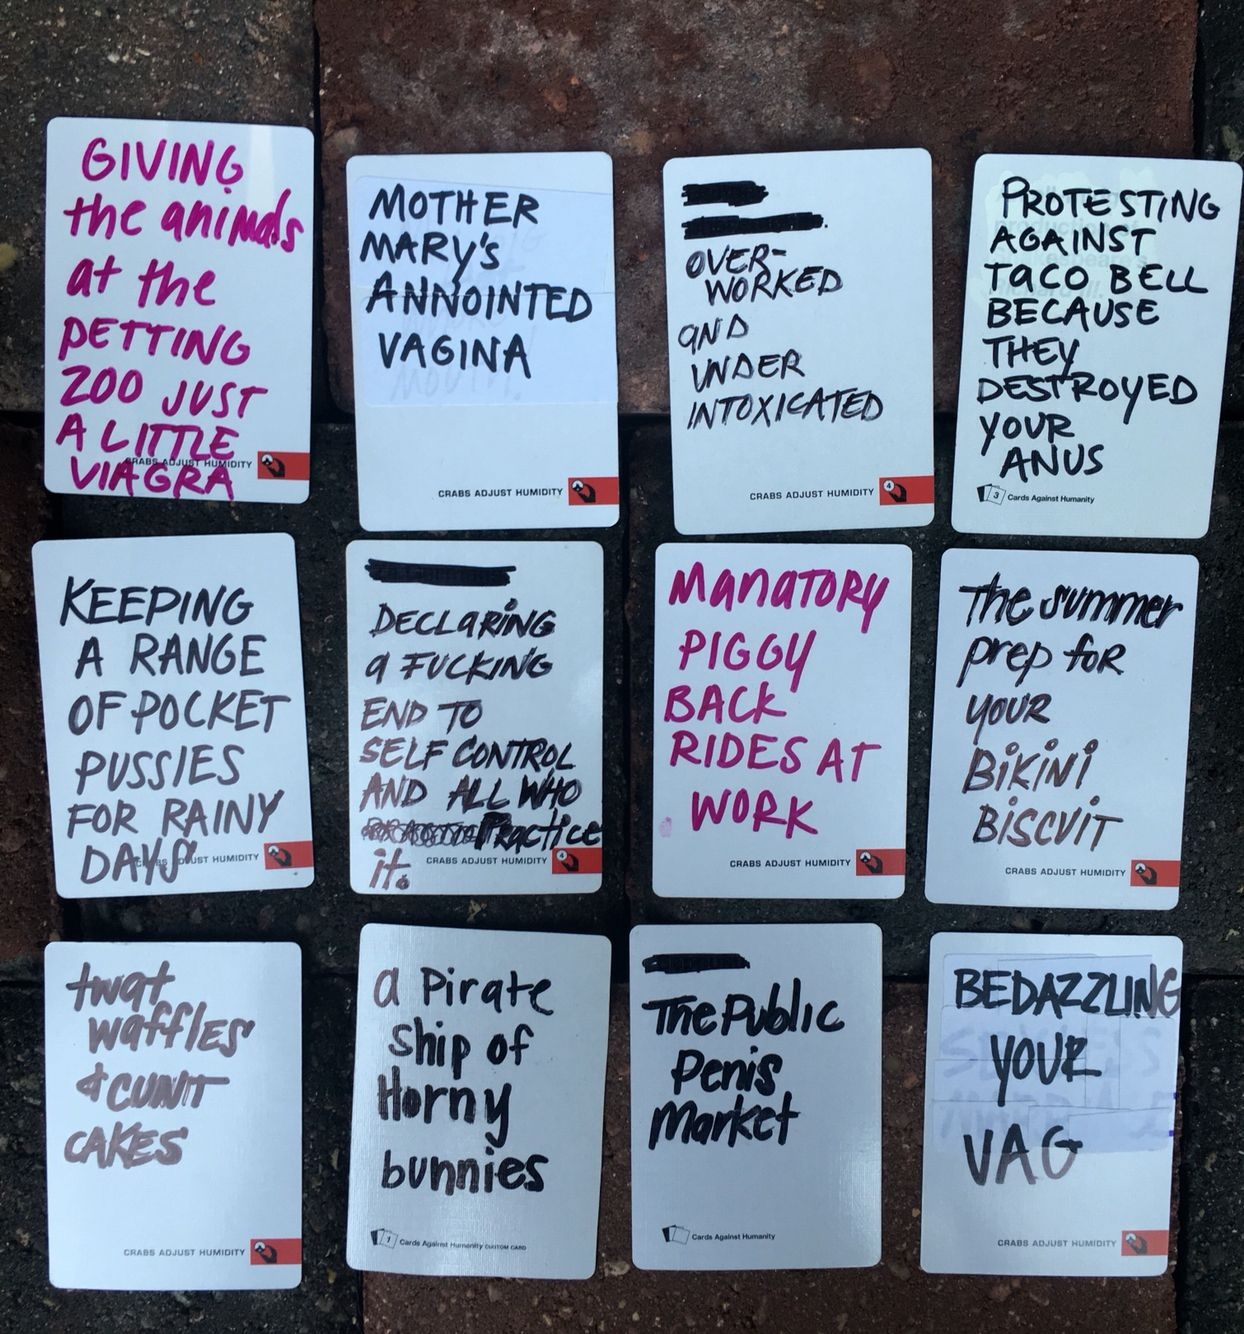 Amazing Make Your Own Cards Against Humanity Ideas Part - 13: Awesome Blank Card Ideas For Cards Against Humanity Game DIY WRITE YOUR OWN  HILARIOUS CARDS AGAINST